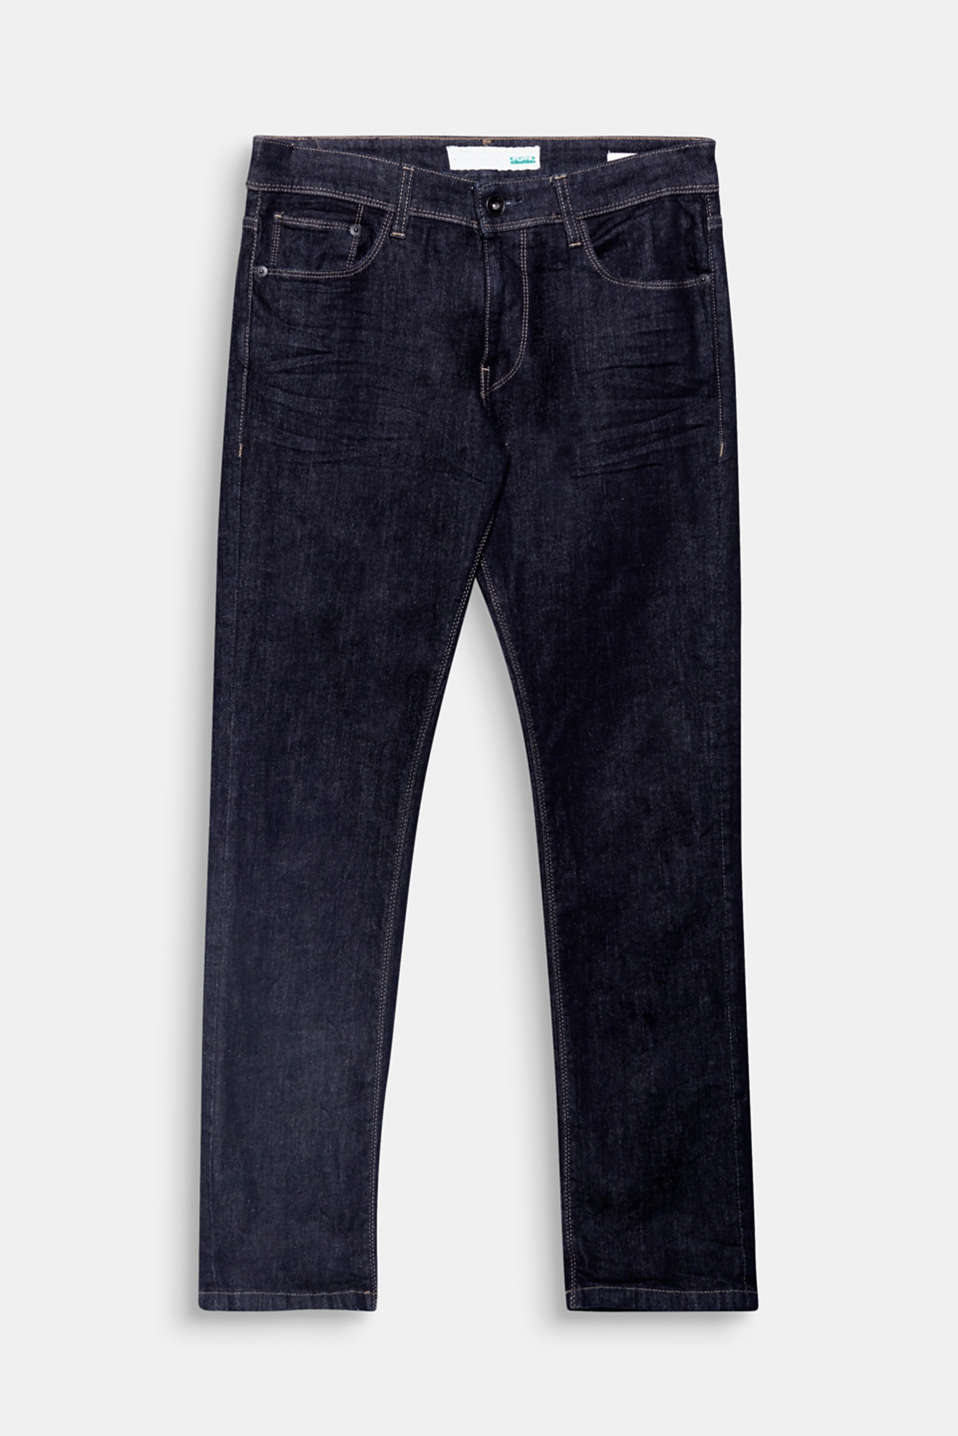 In a dark rinse wash: five-pocket jeans made of organic cotton with added stretch for comfort